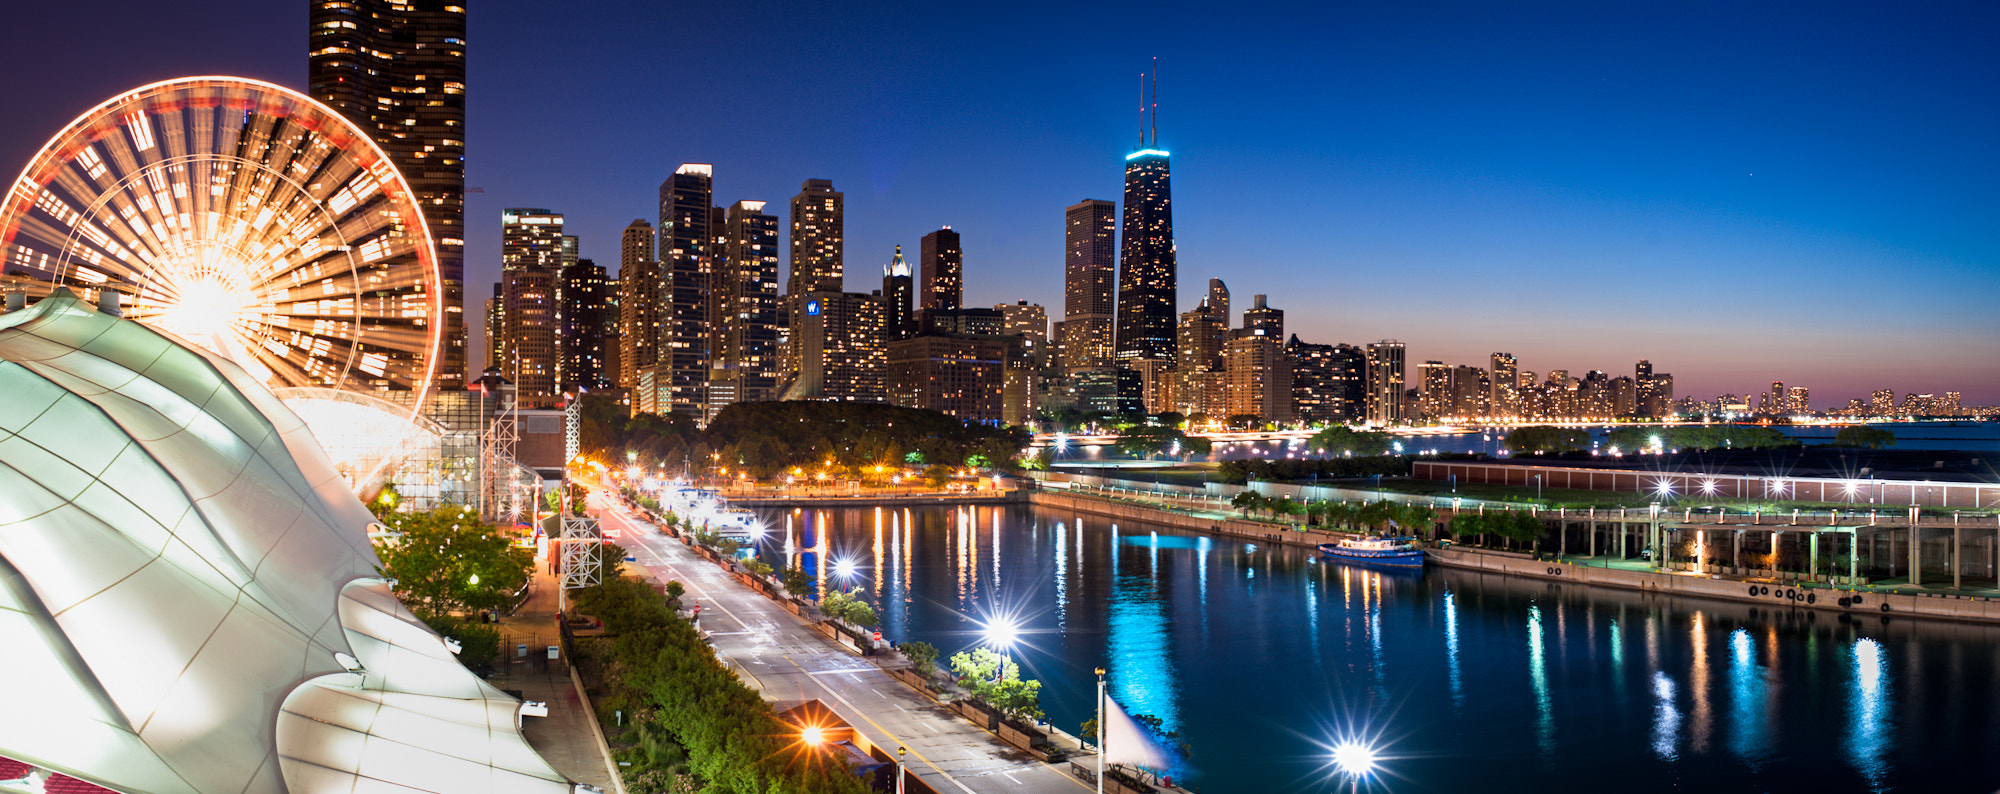 Photograph Downtown from Navy Pier, Chicago, IL by Craig Hudson on 500px